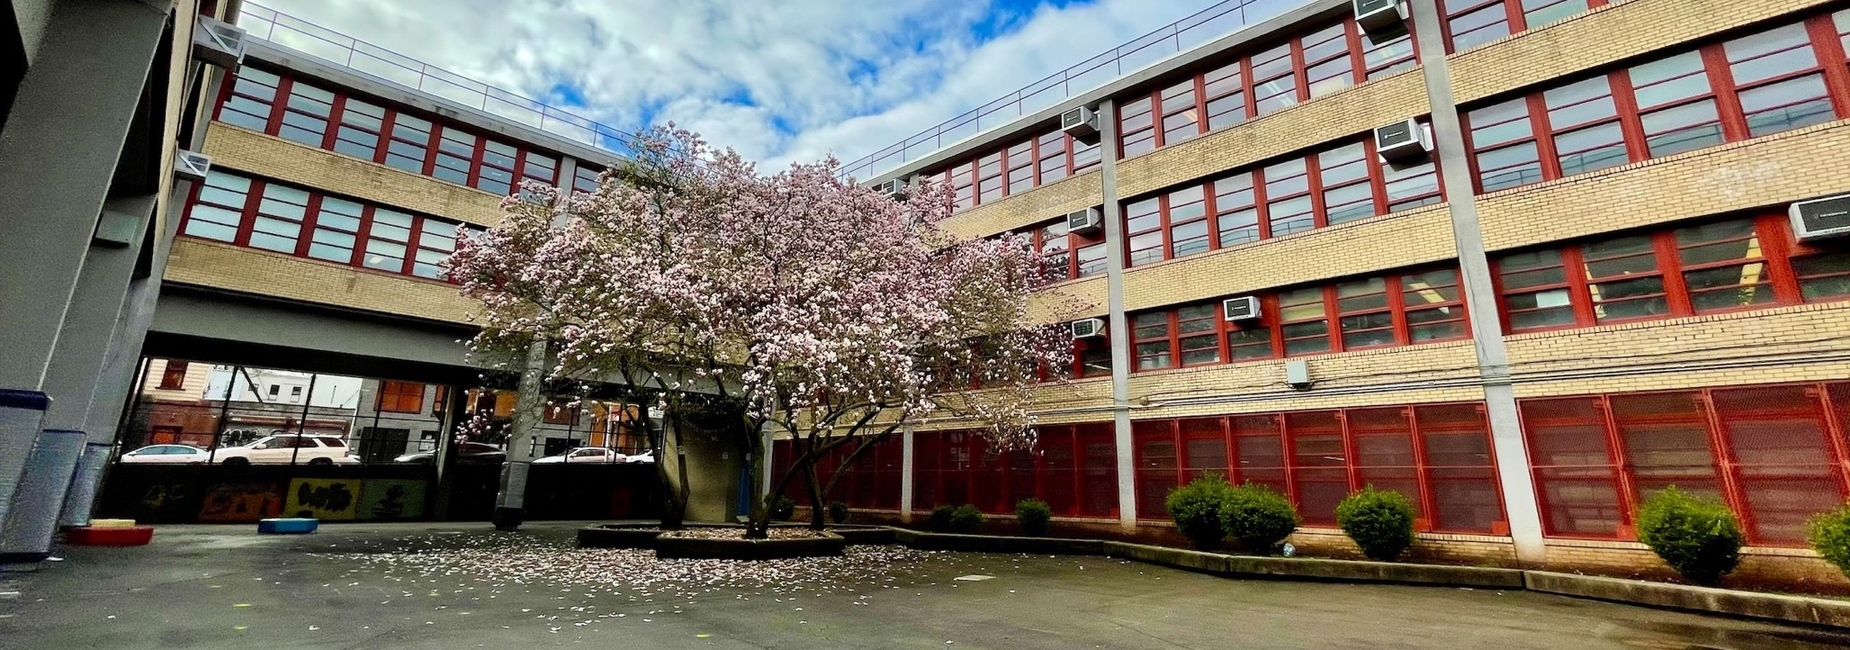 Spring is here at PS/IS 45's school yard!